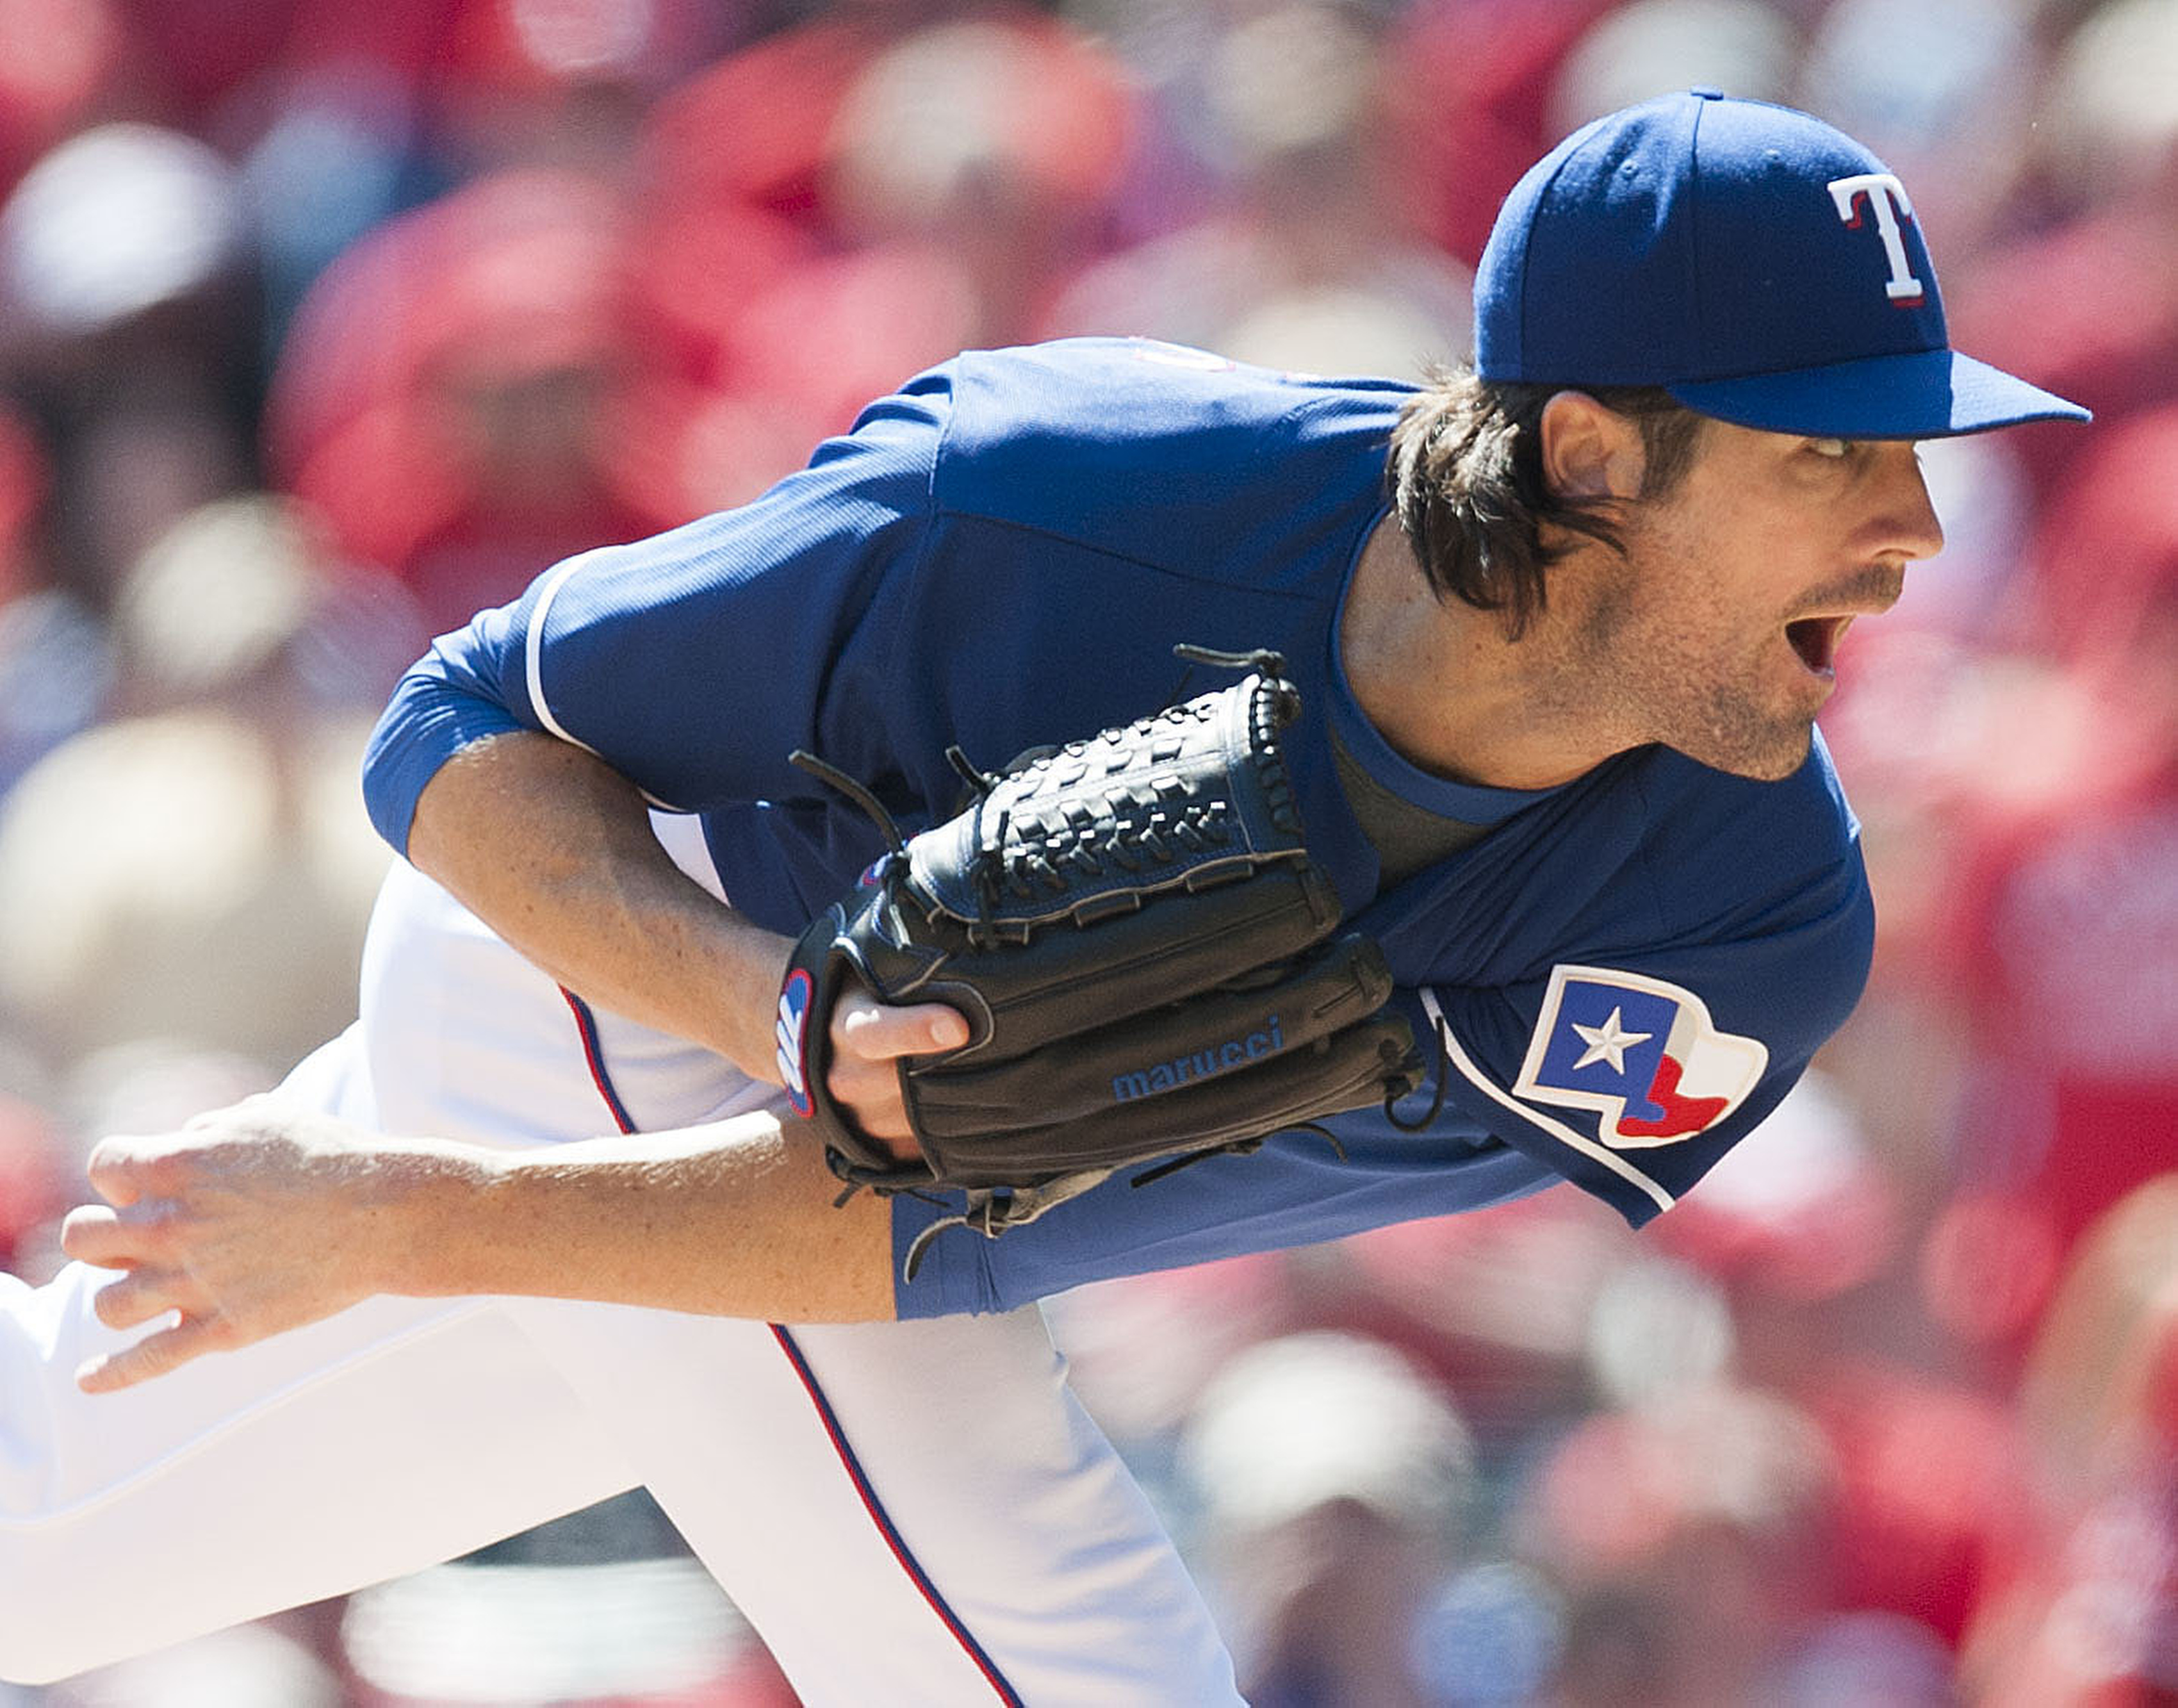 Texas Rangers starting pitcher Cole Hamels delivers during a baseball game against the Los Angeles Angels in Arlington, Texas, Sunday, Oct. 4, 2015. The Rangers clinched the AL West title on the last day of the regular season with the 9-2 win.  (Kevin Sul